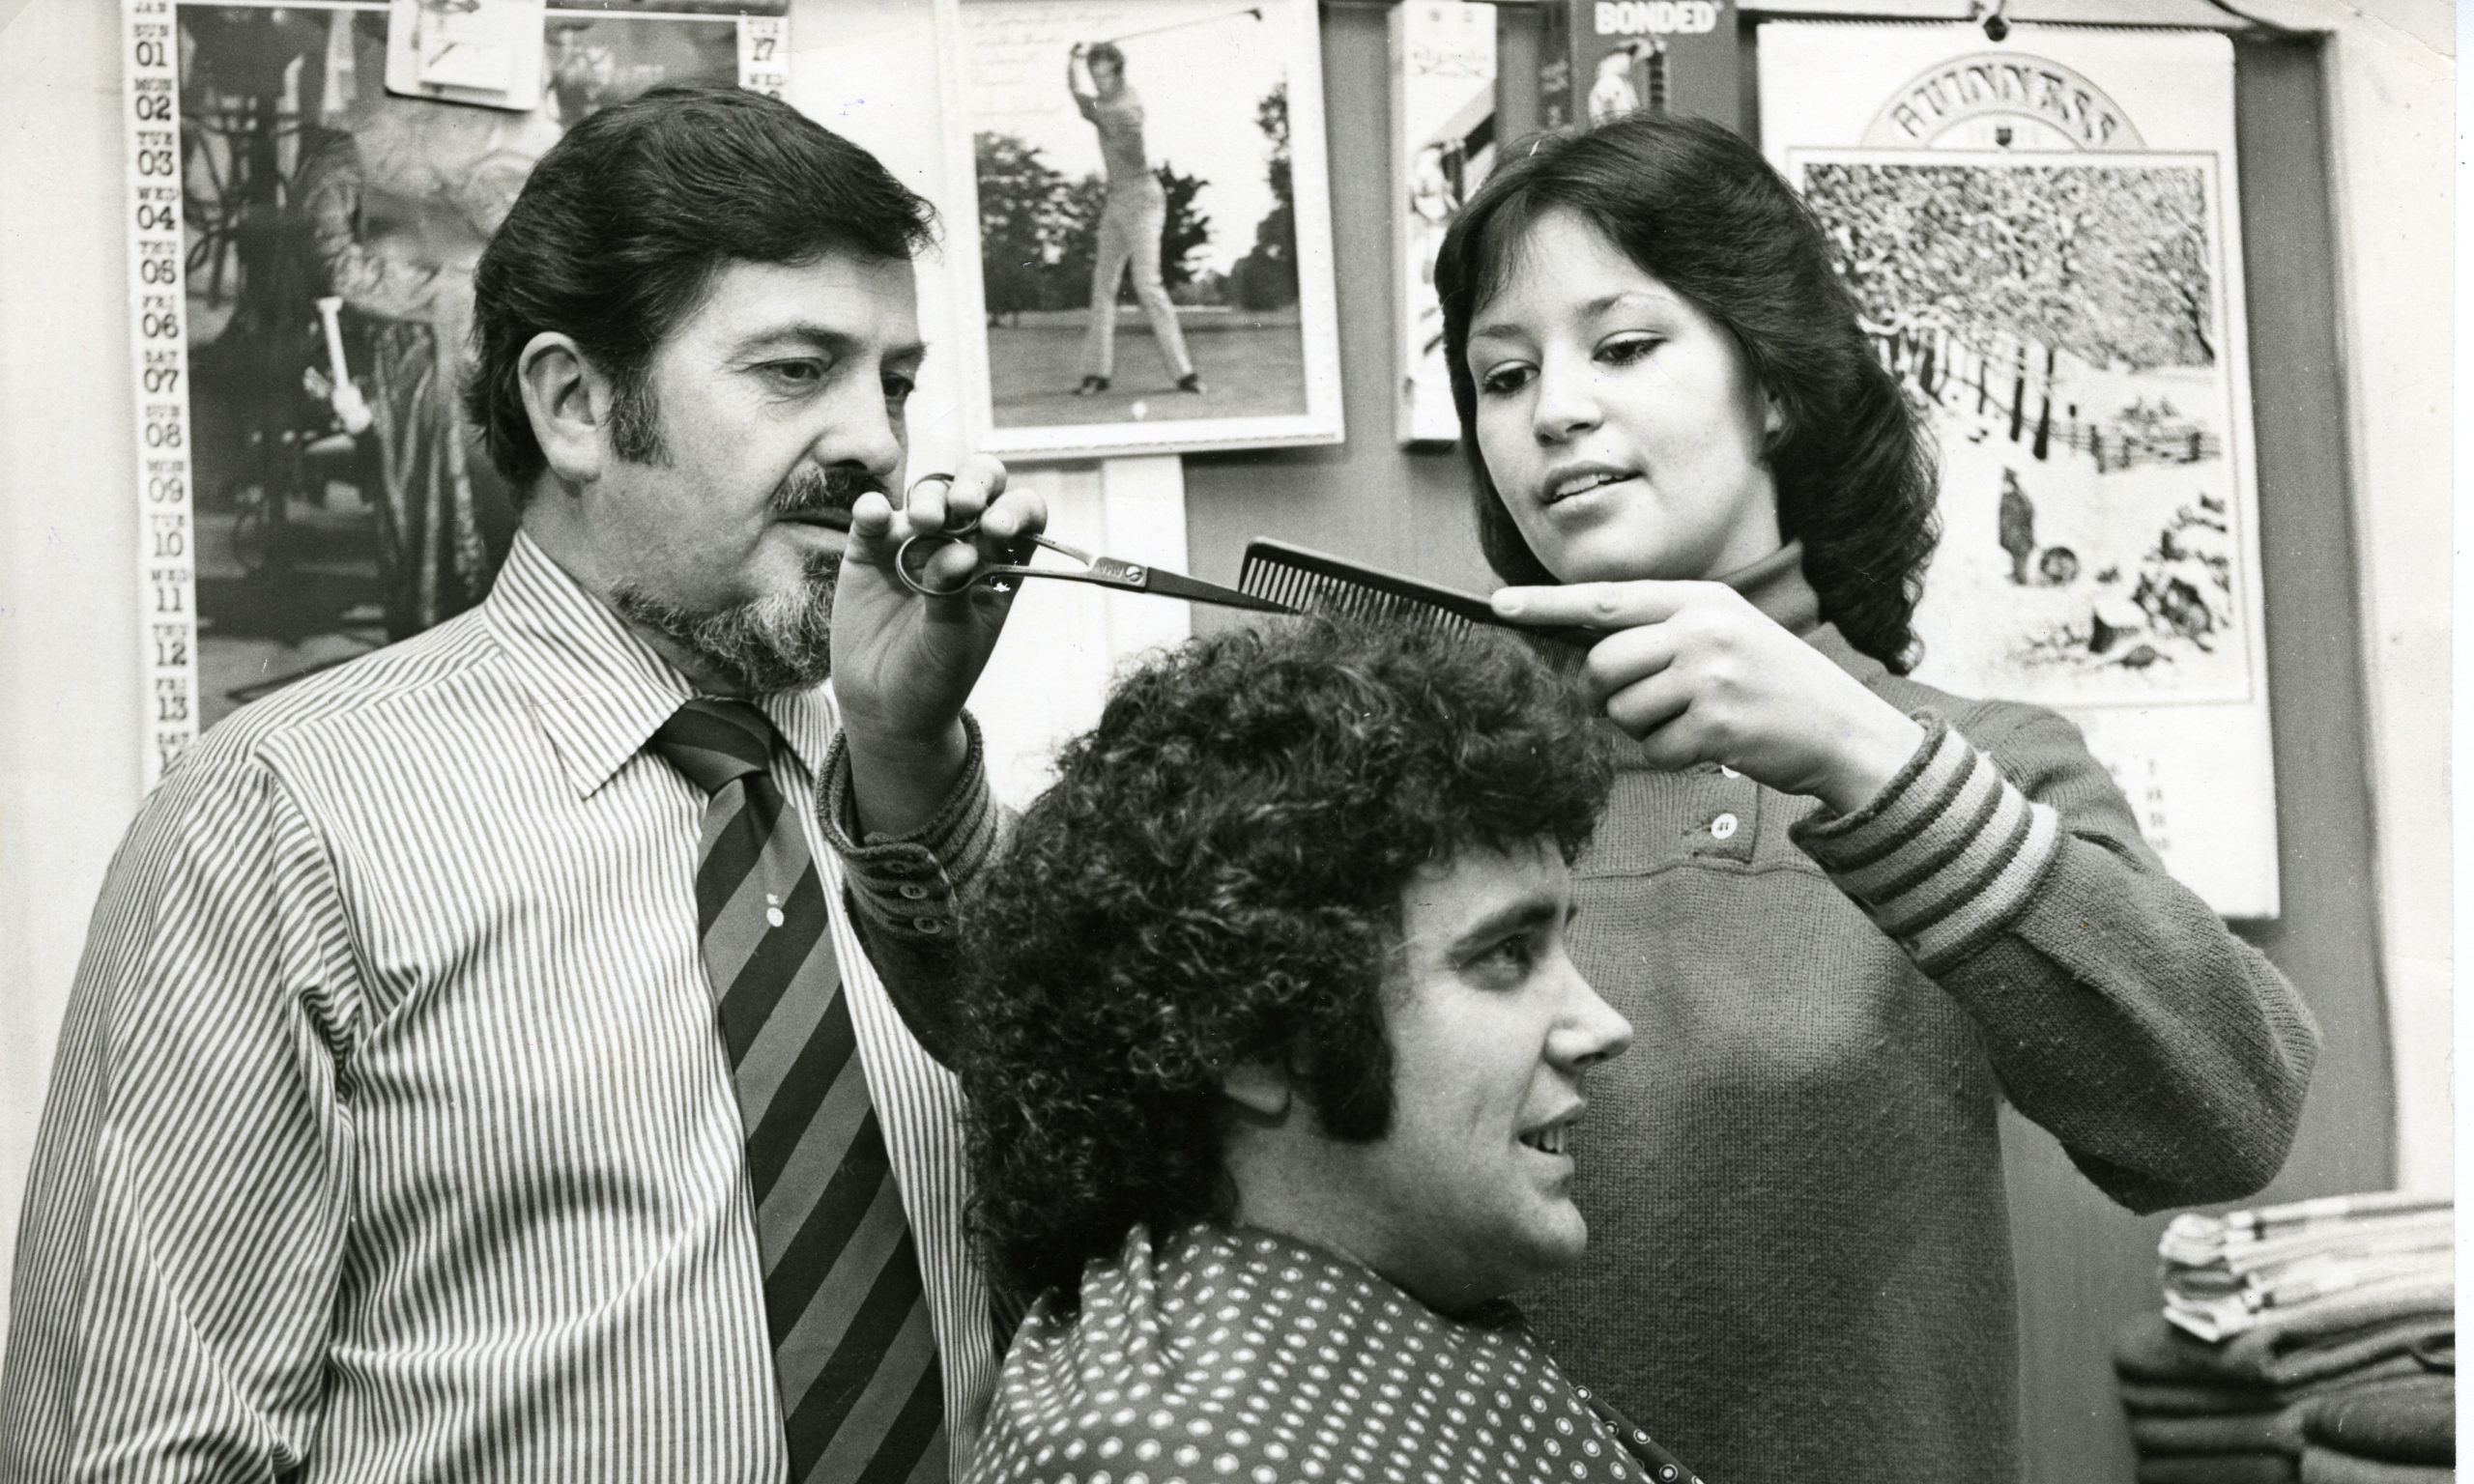 Hairstyles of the 1970s! Client Alex Ross gets his curly mop chopped in Dundee in January 1978.